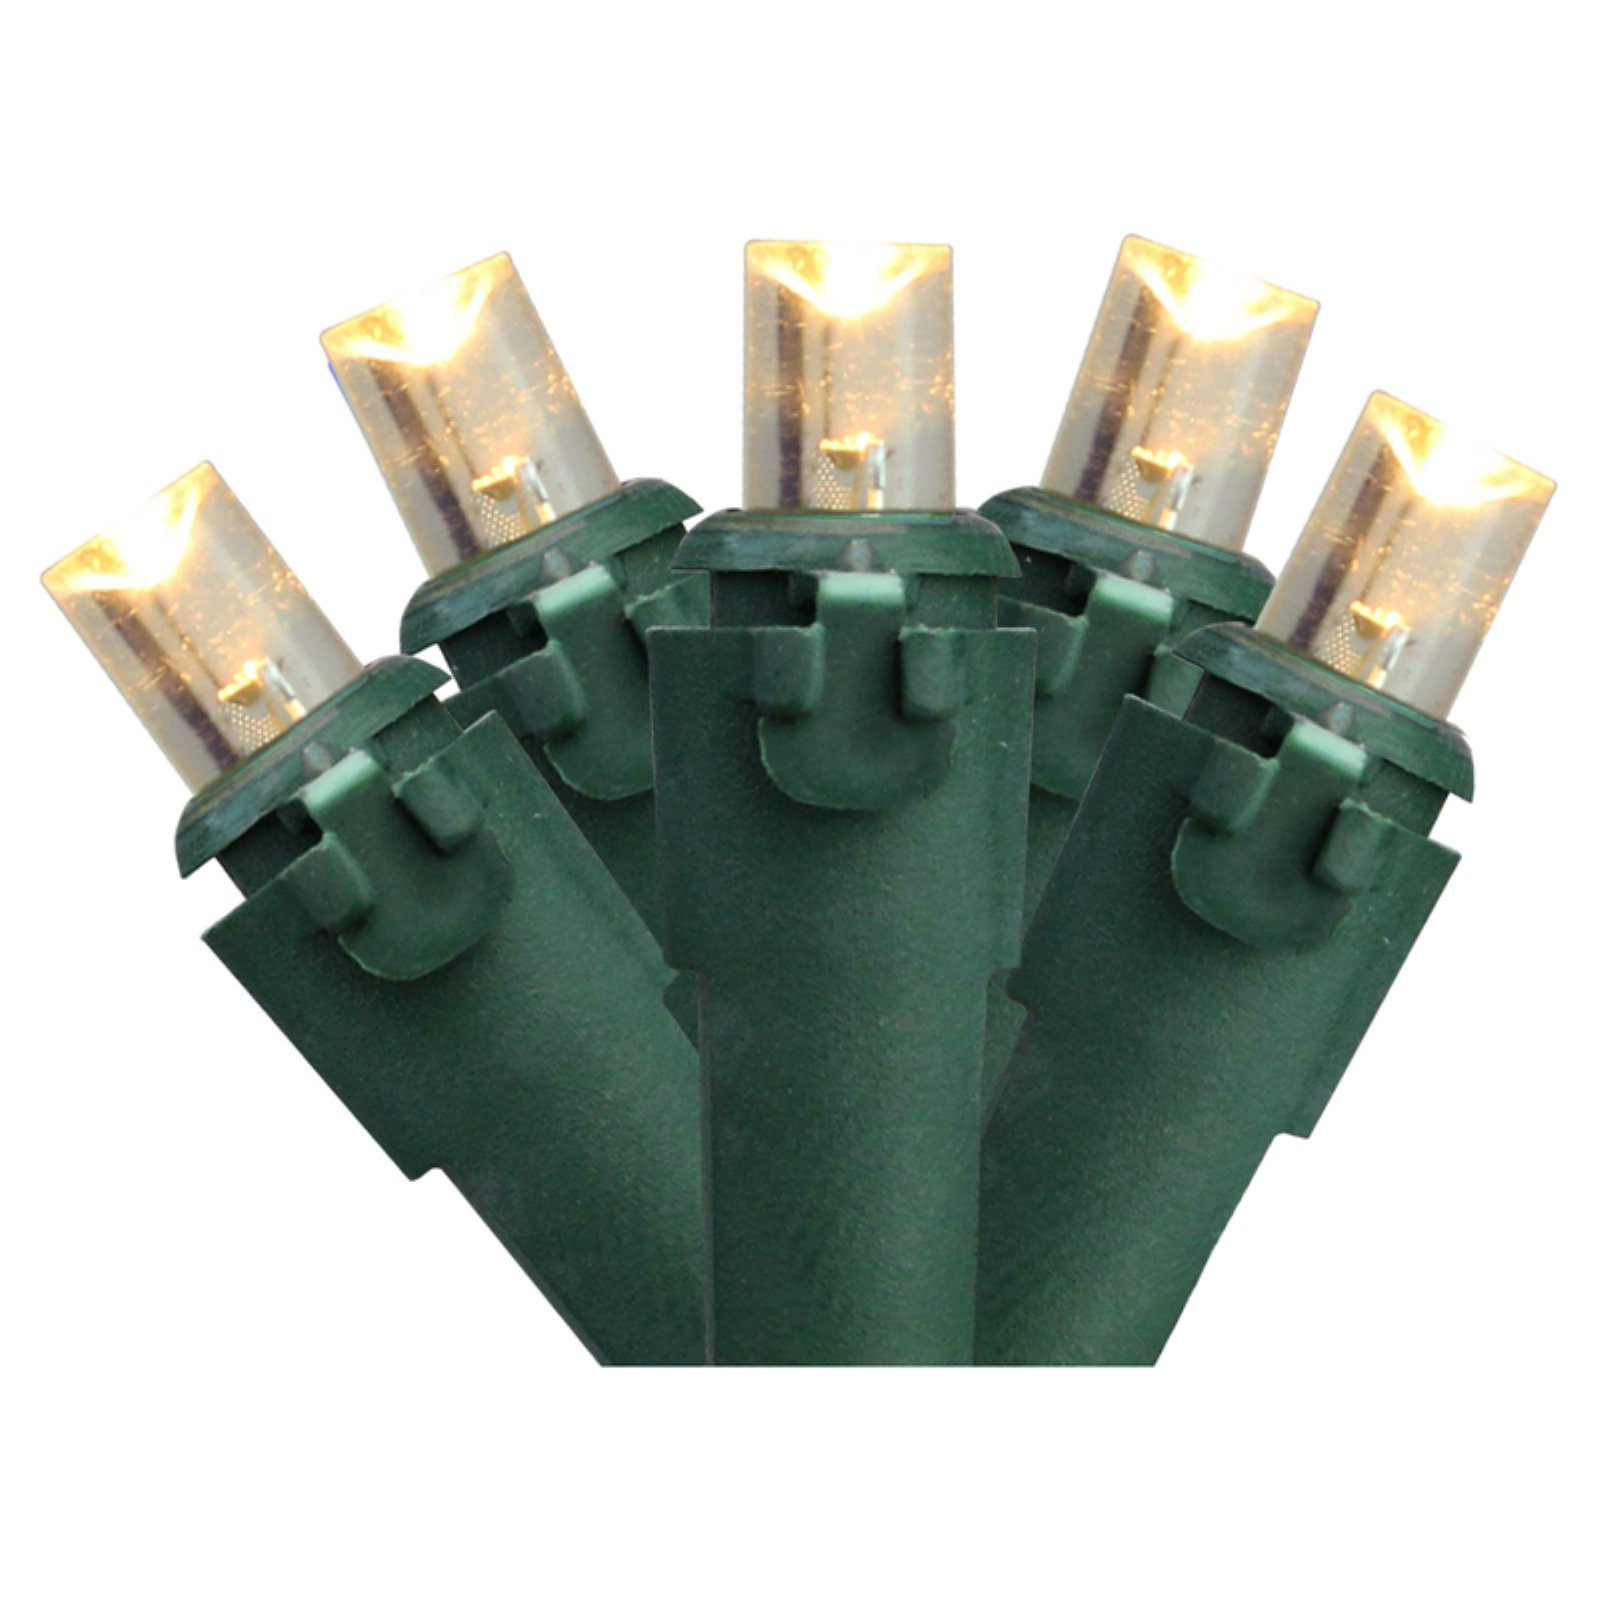 Northlight 100 ct. LED Lights with Green Wire 4 in. Spacing